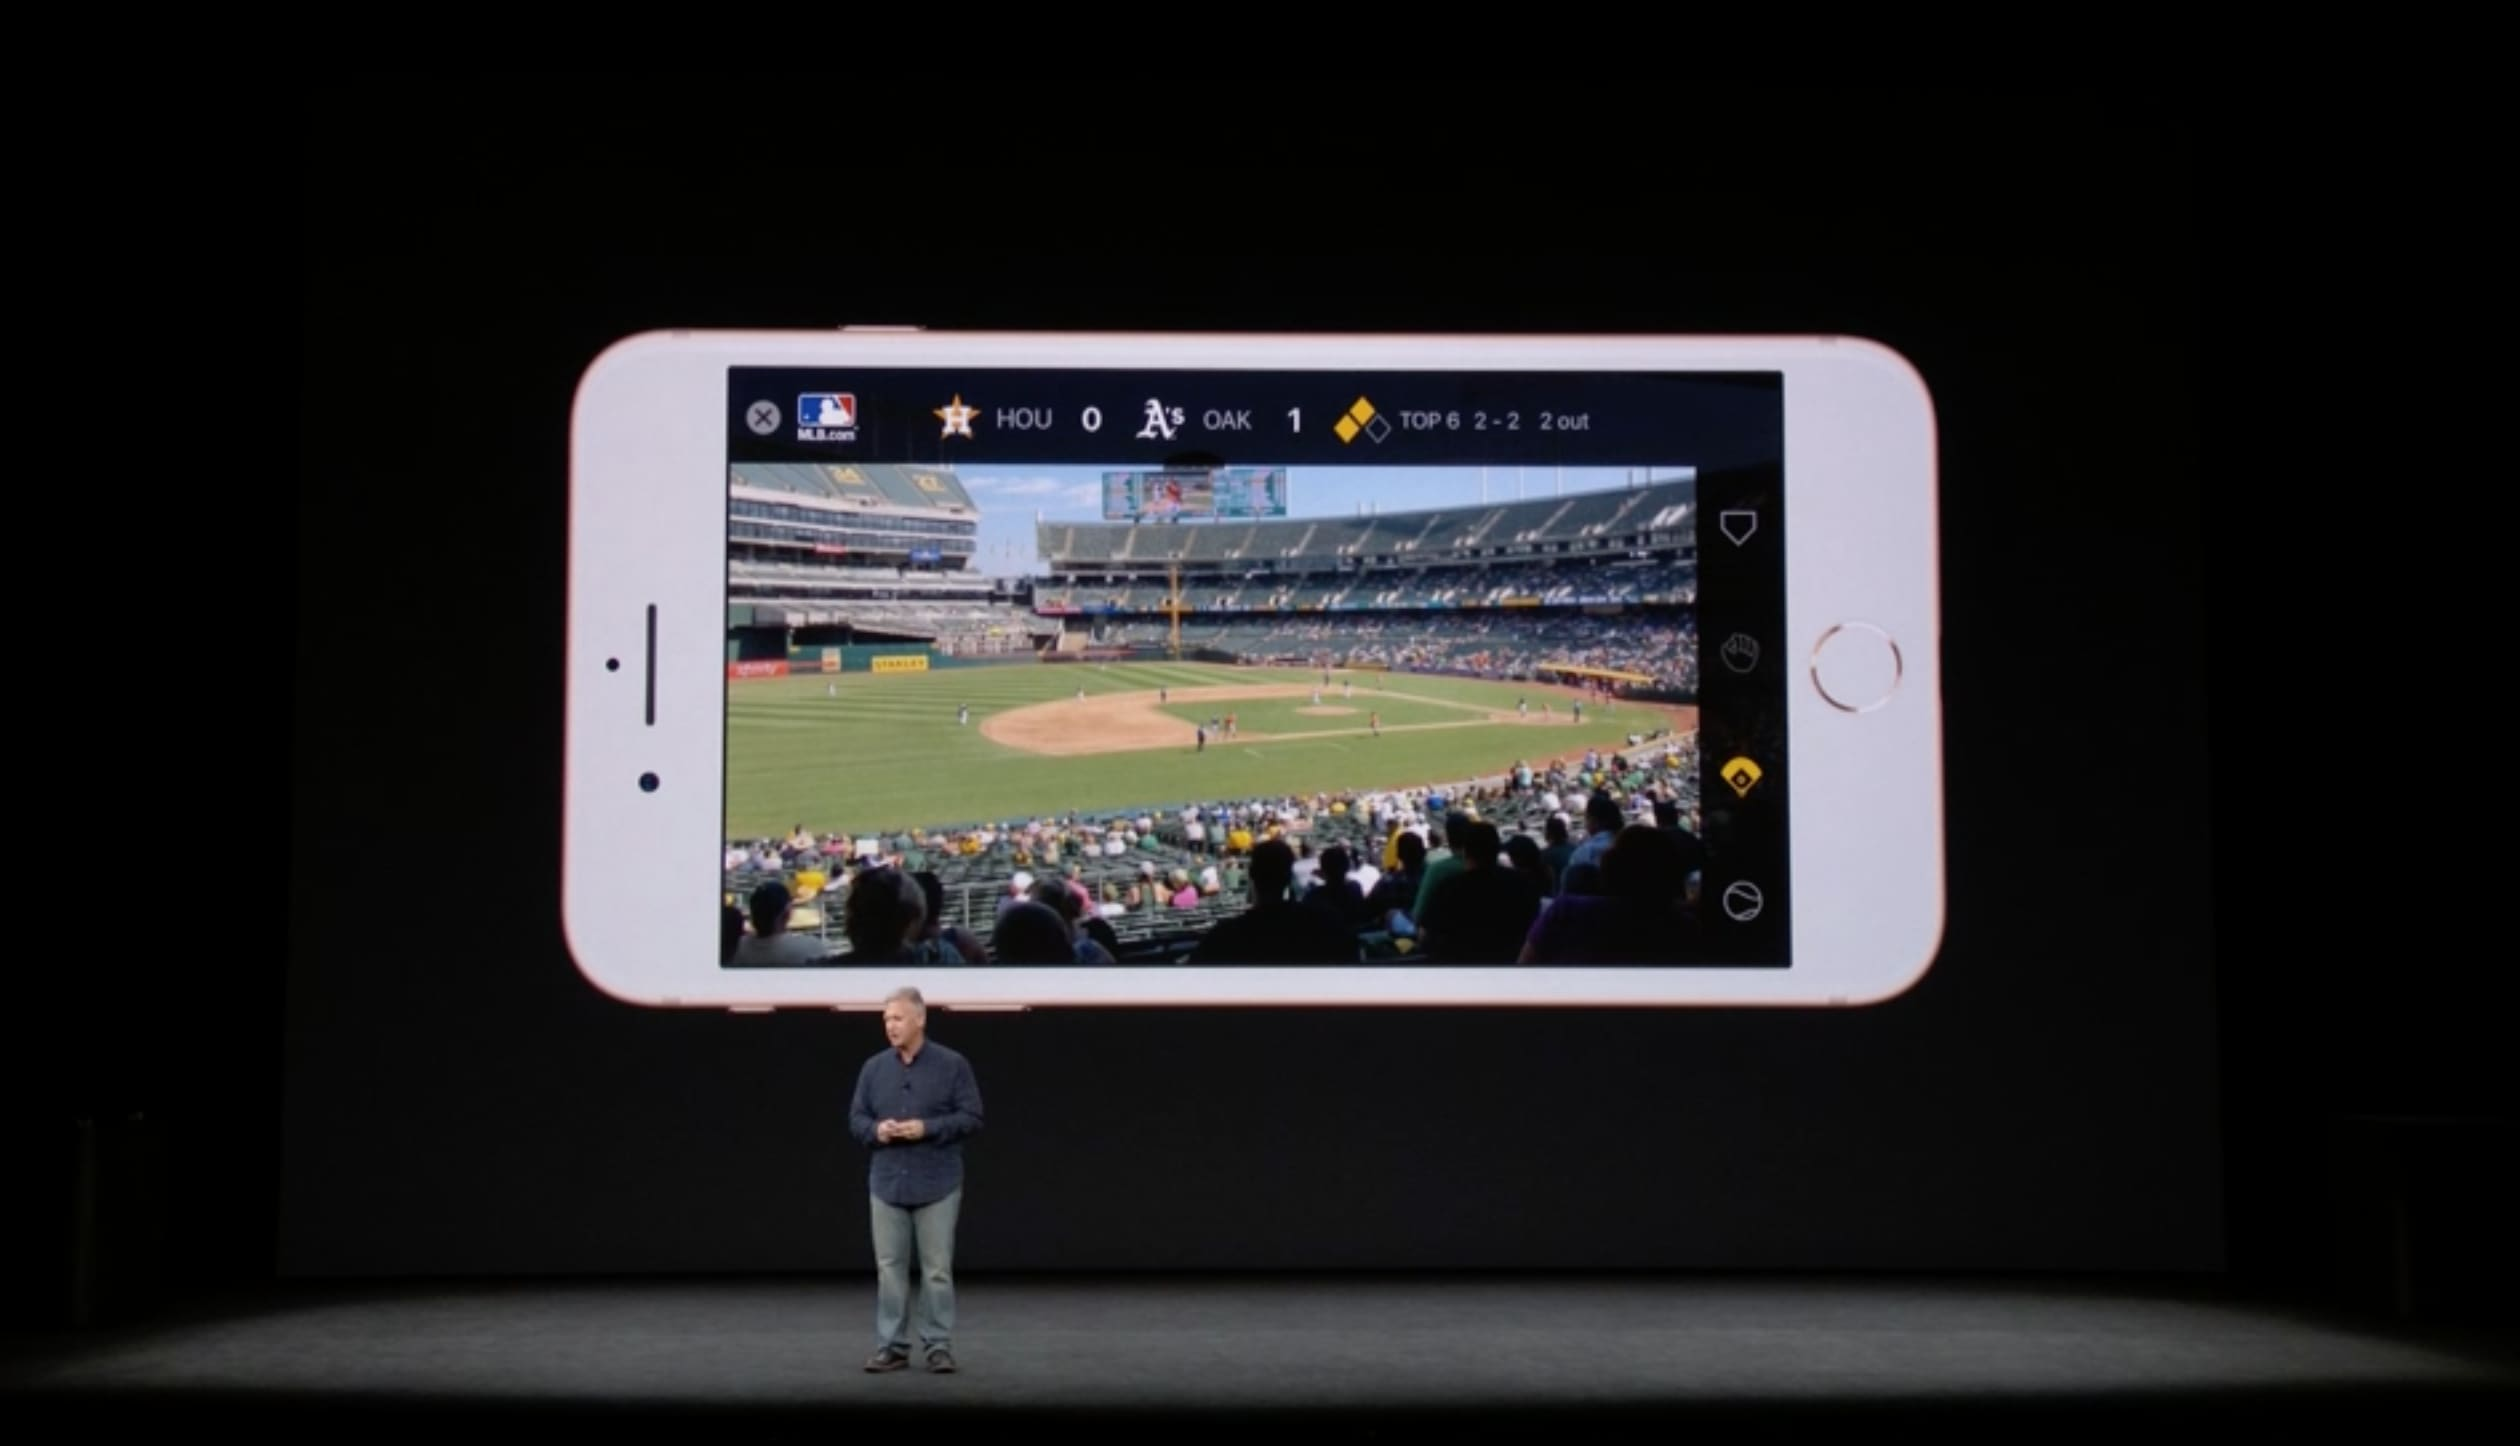 Watch Apple demonstrate the new iPhone 8's augmented reality features